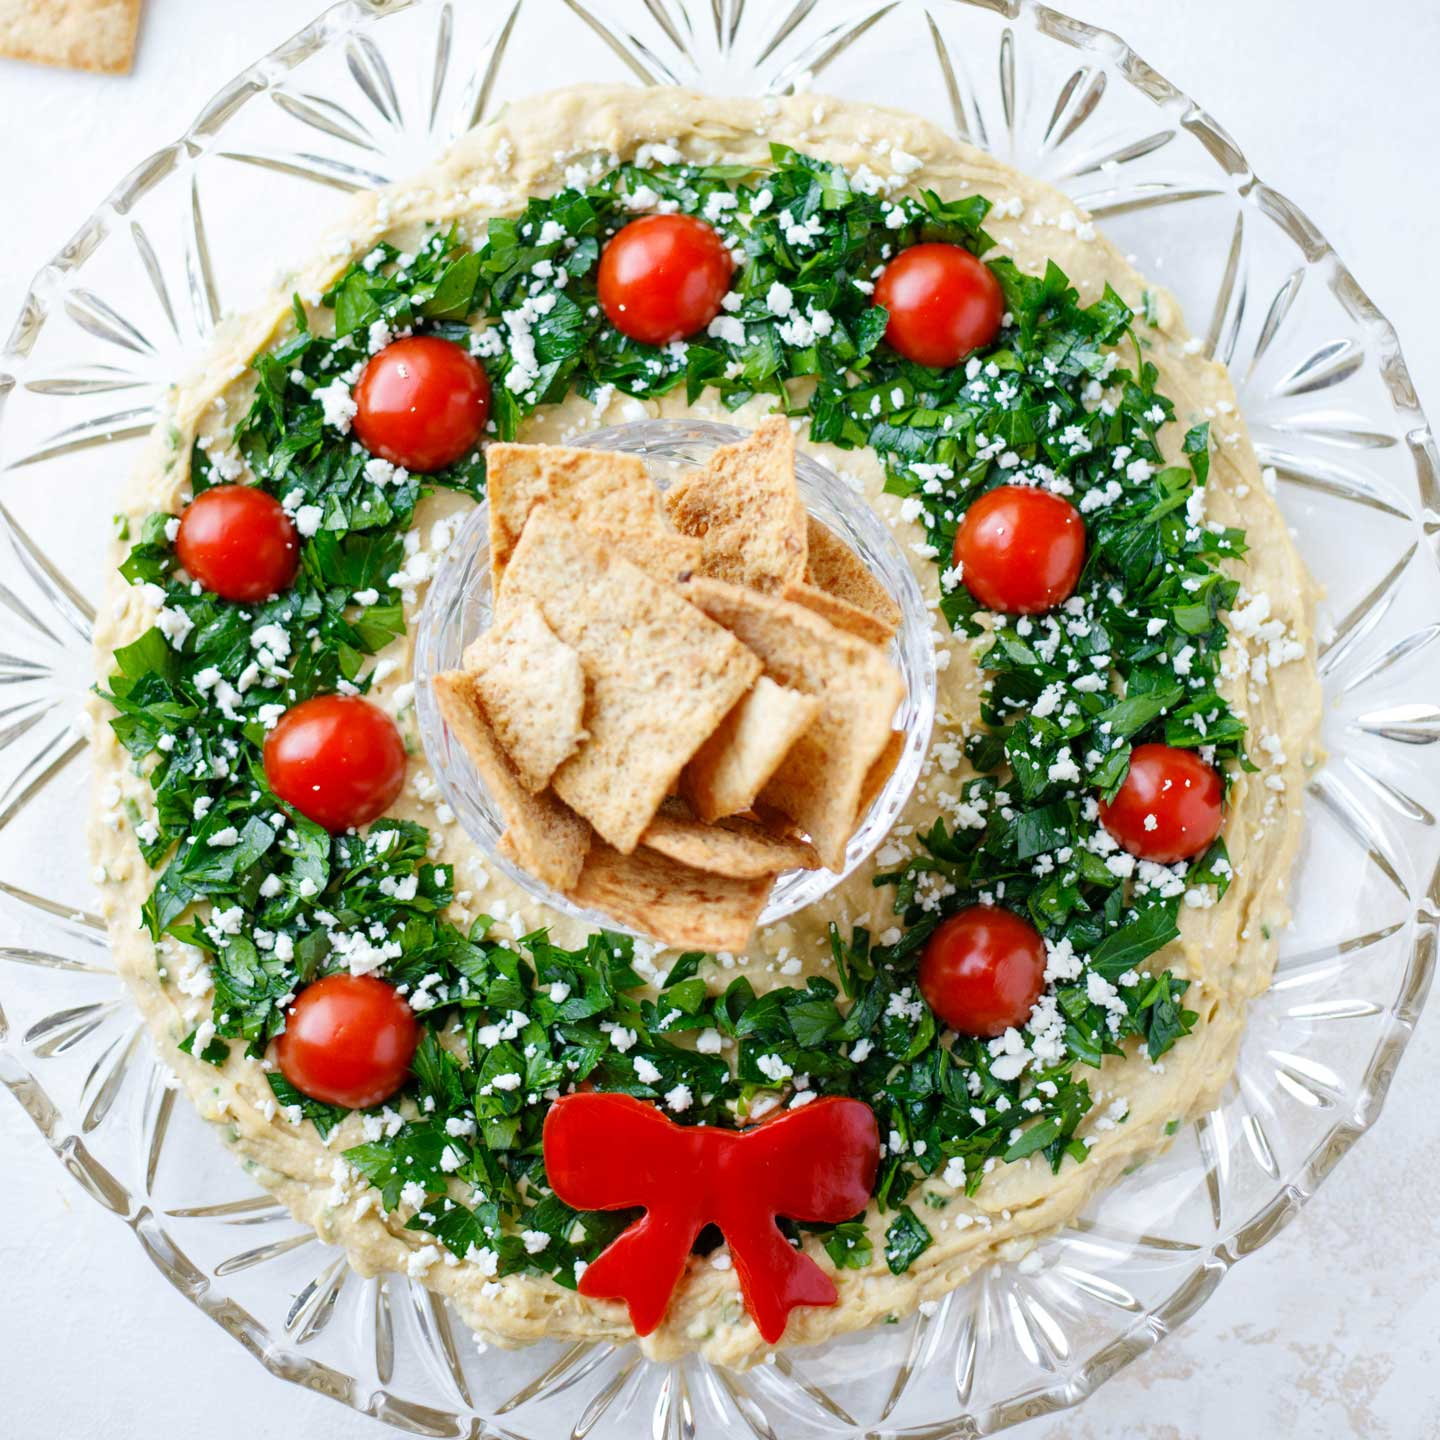 "A super-easy showstopper! This ""Hummus Wreath"" Christmas appetizer recipe is quick and simple, but so pretty and impressive! Even better? You can make it ENTIRELY AHEAD (just perfect during the hectic holiday season)! Terrific served with pita chips or pretty veggies. It's a huge hit every time we serve it! Try it today and see for yourself – you'll love all the impressed ooooohs and aaaaahs you'll hear! 